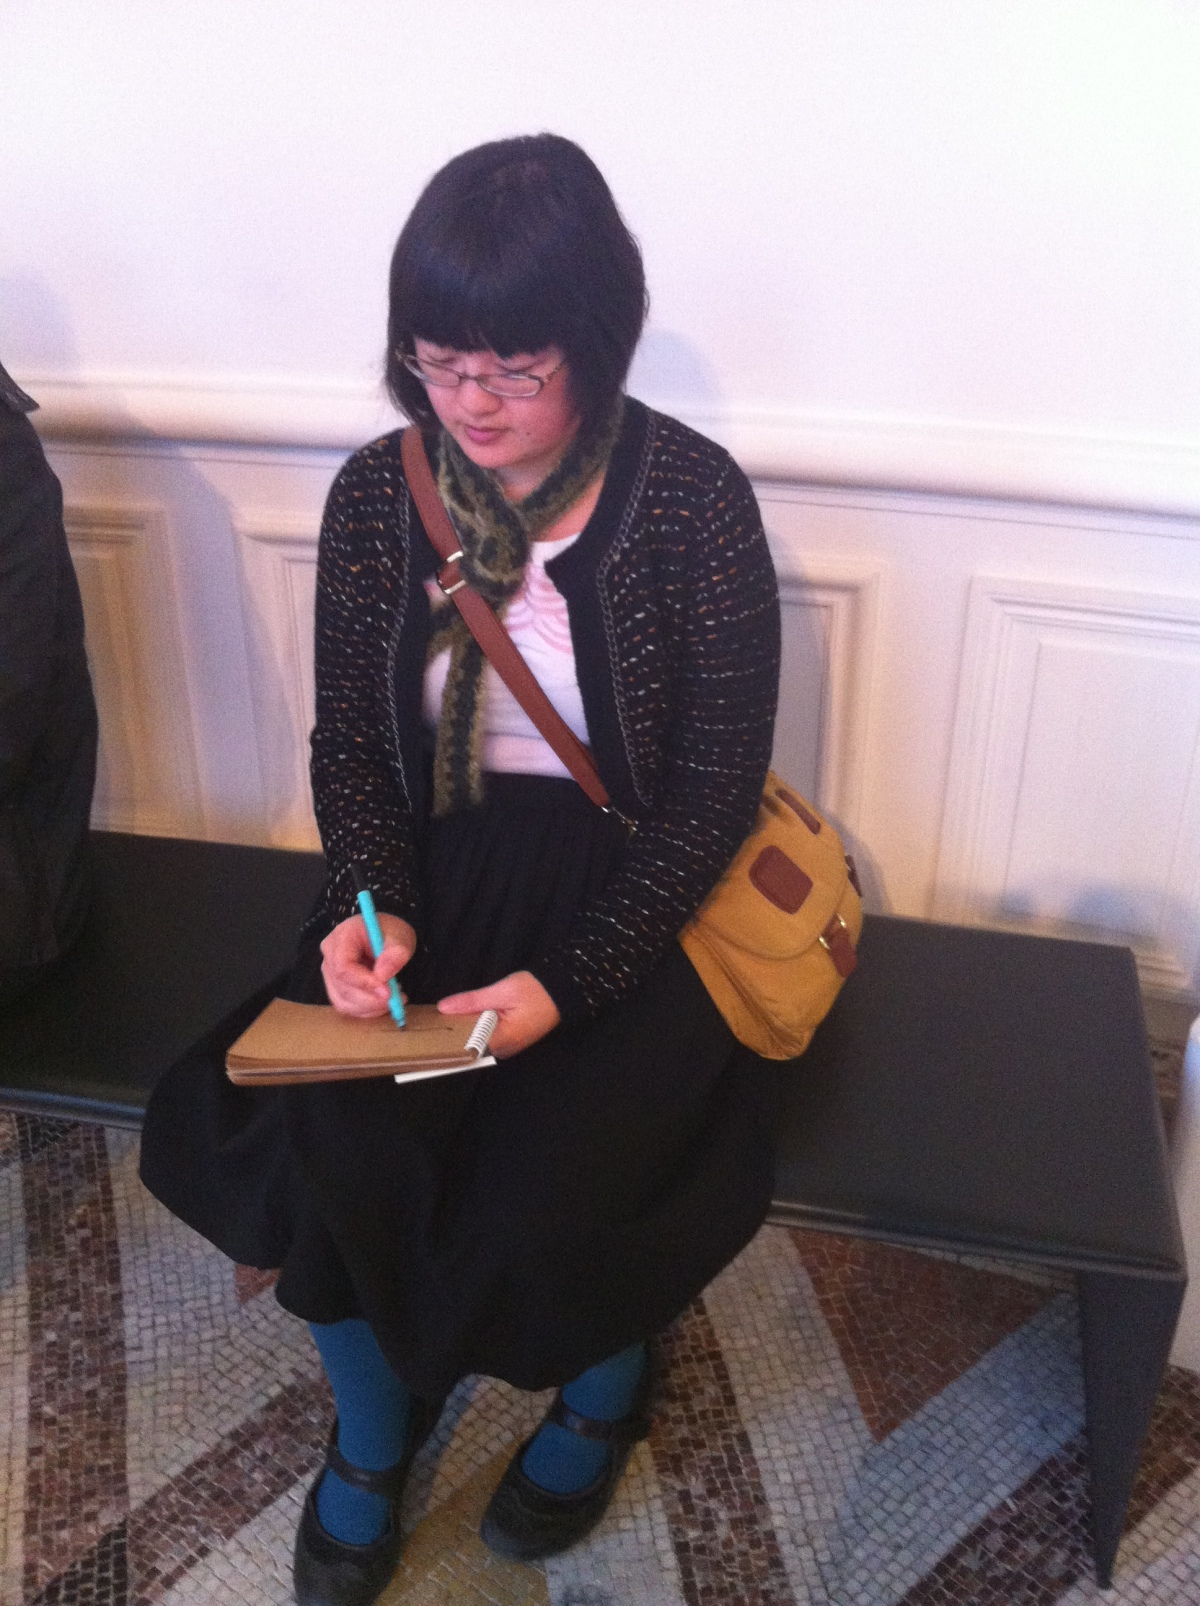 Lisa sketching, photo by Edith of La Vie Parisienne Meetup group